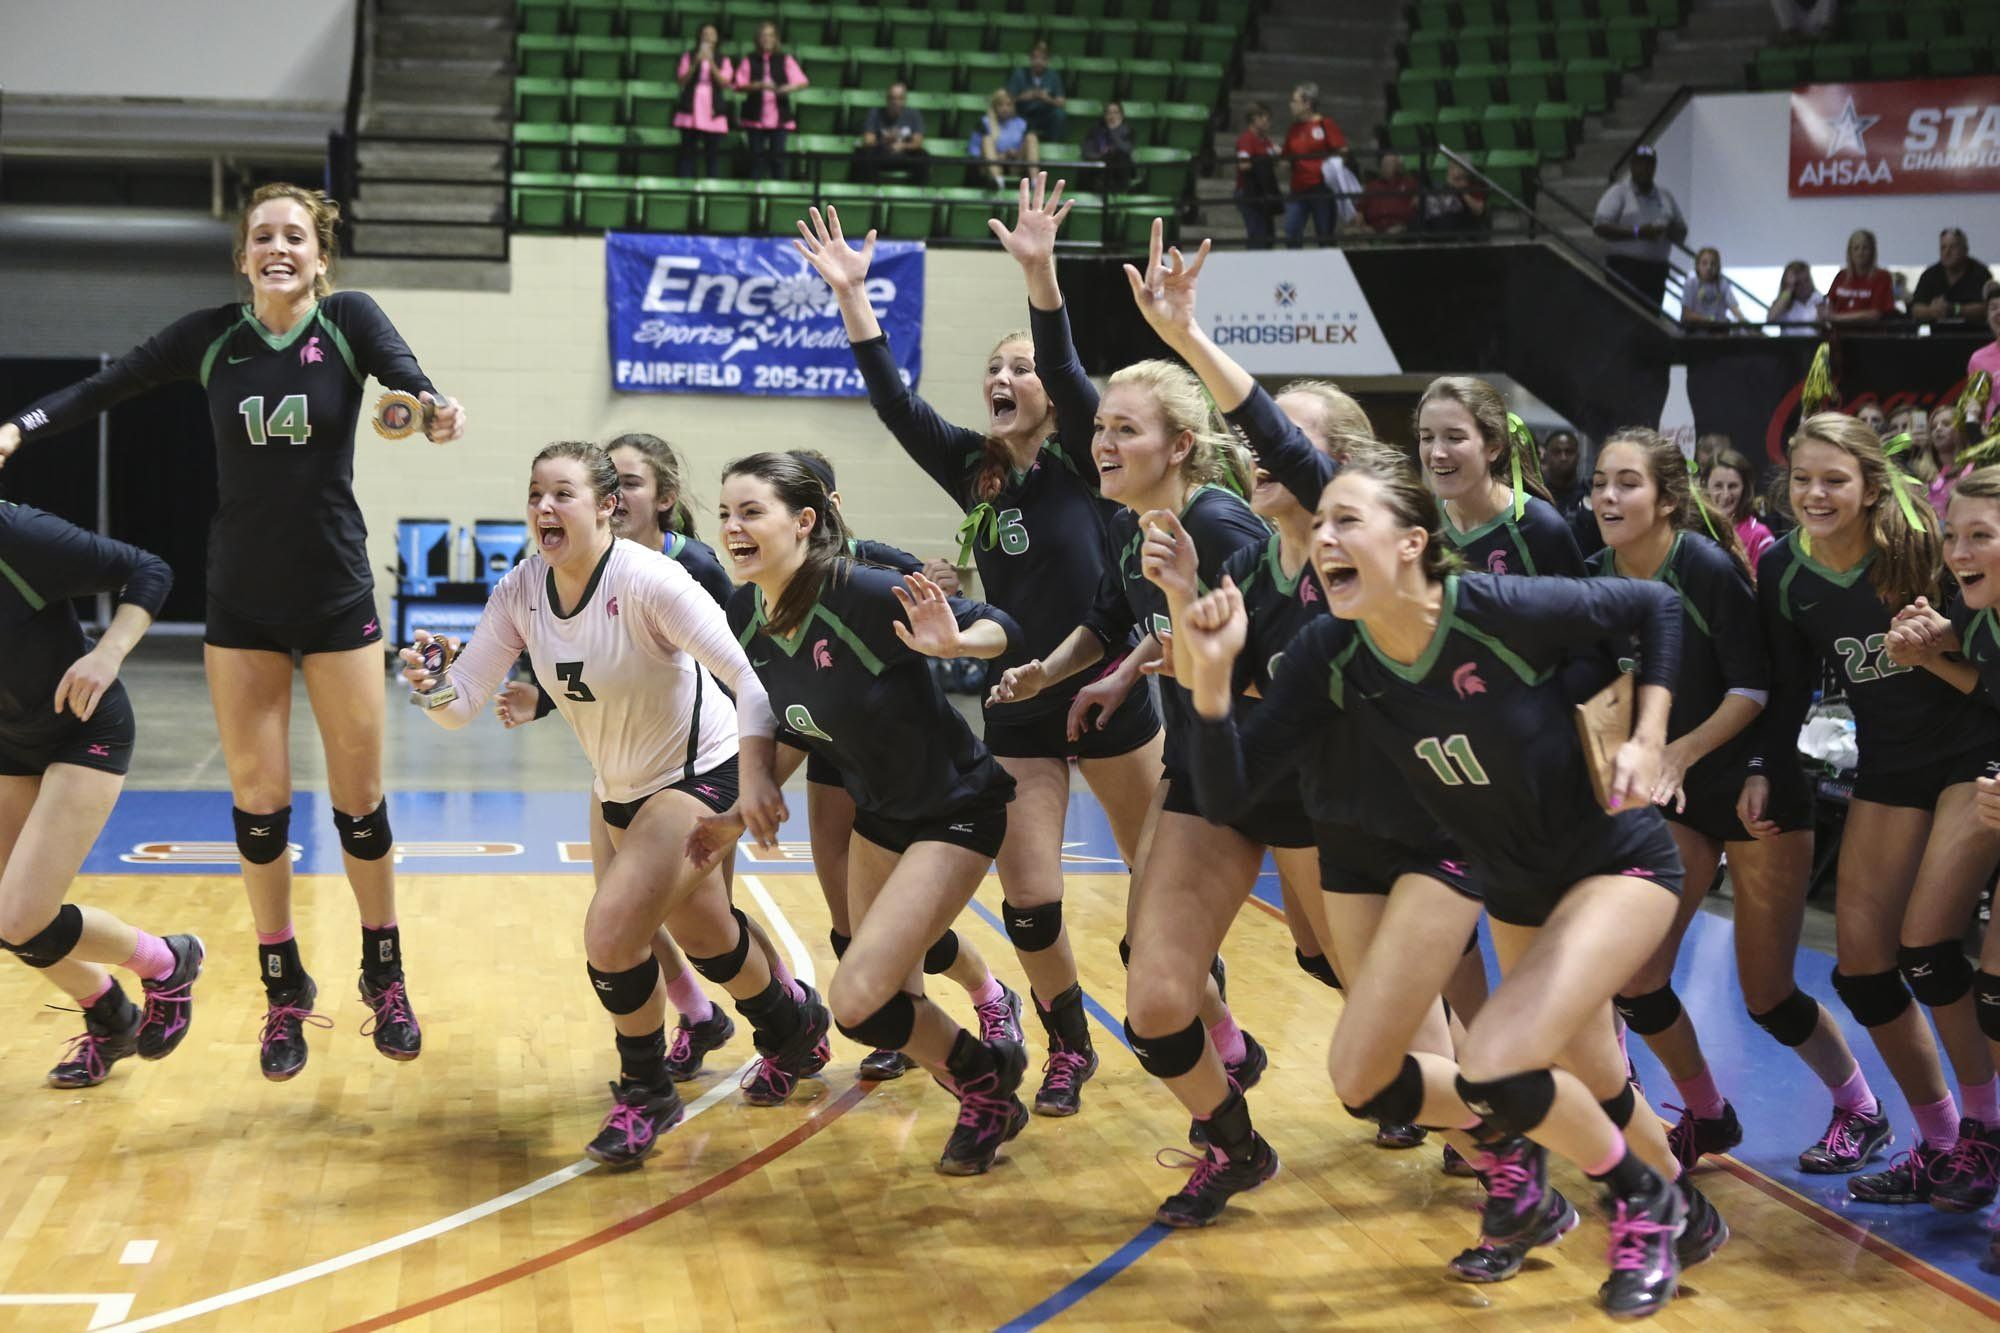 Mountain Brook Vs Hoover Volleyball State Championship 2016 High School Volleyball Volleyball Pictures Volleyball Sports